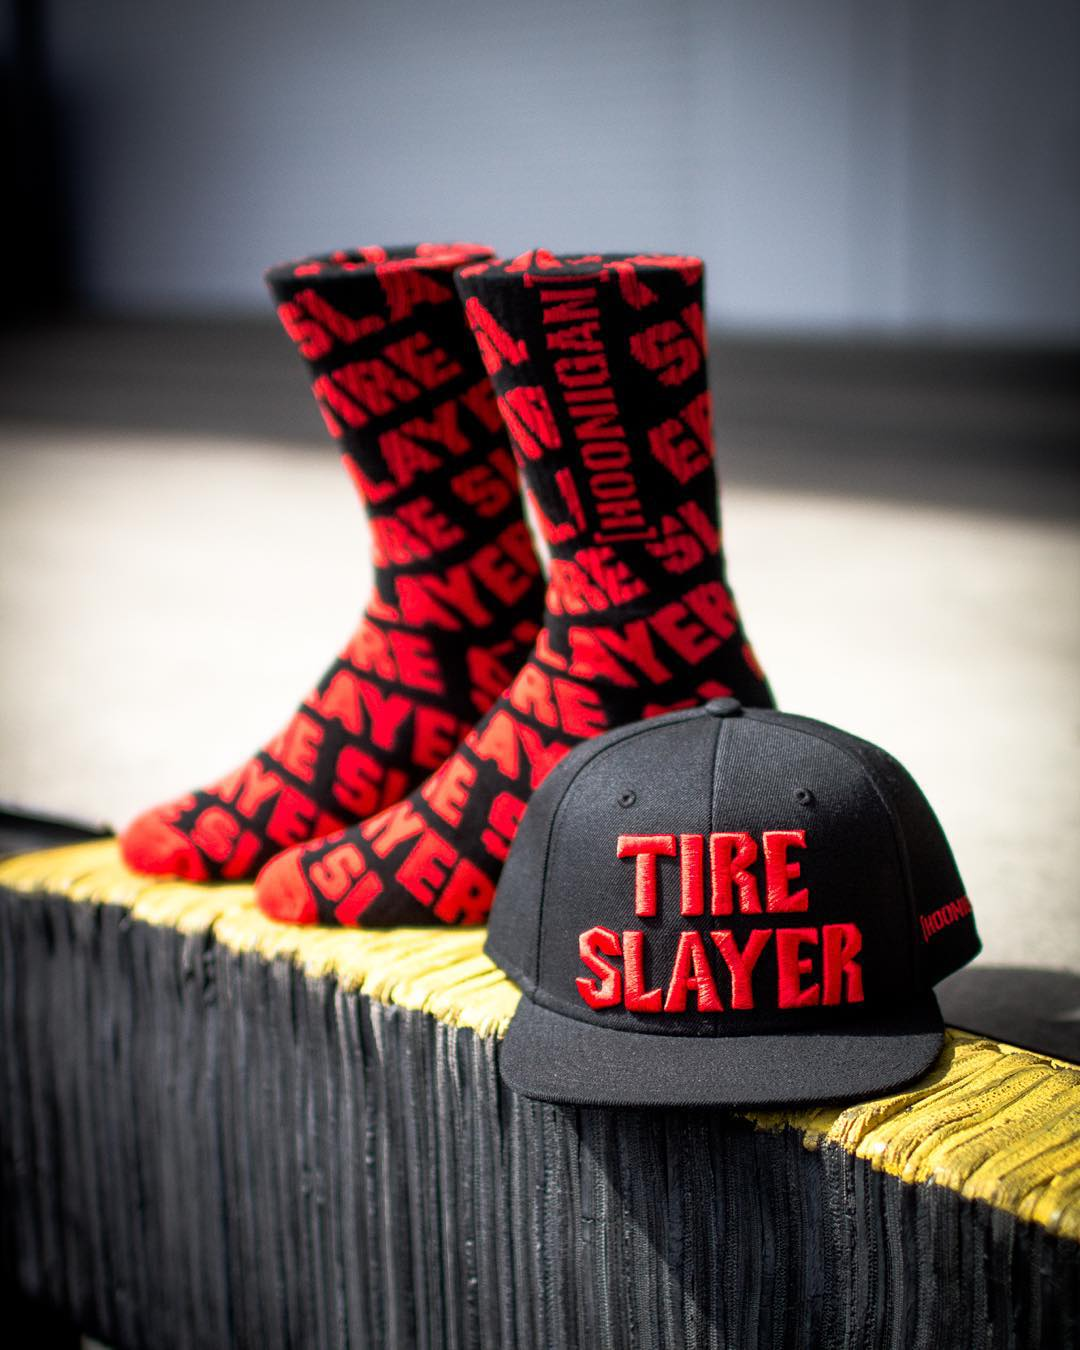 If you've been to #hooniganDOTcom lately then you already know about the all new Tire Slayer socks. Available now. #thatsnapbacktho